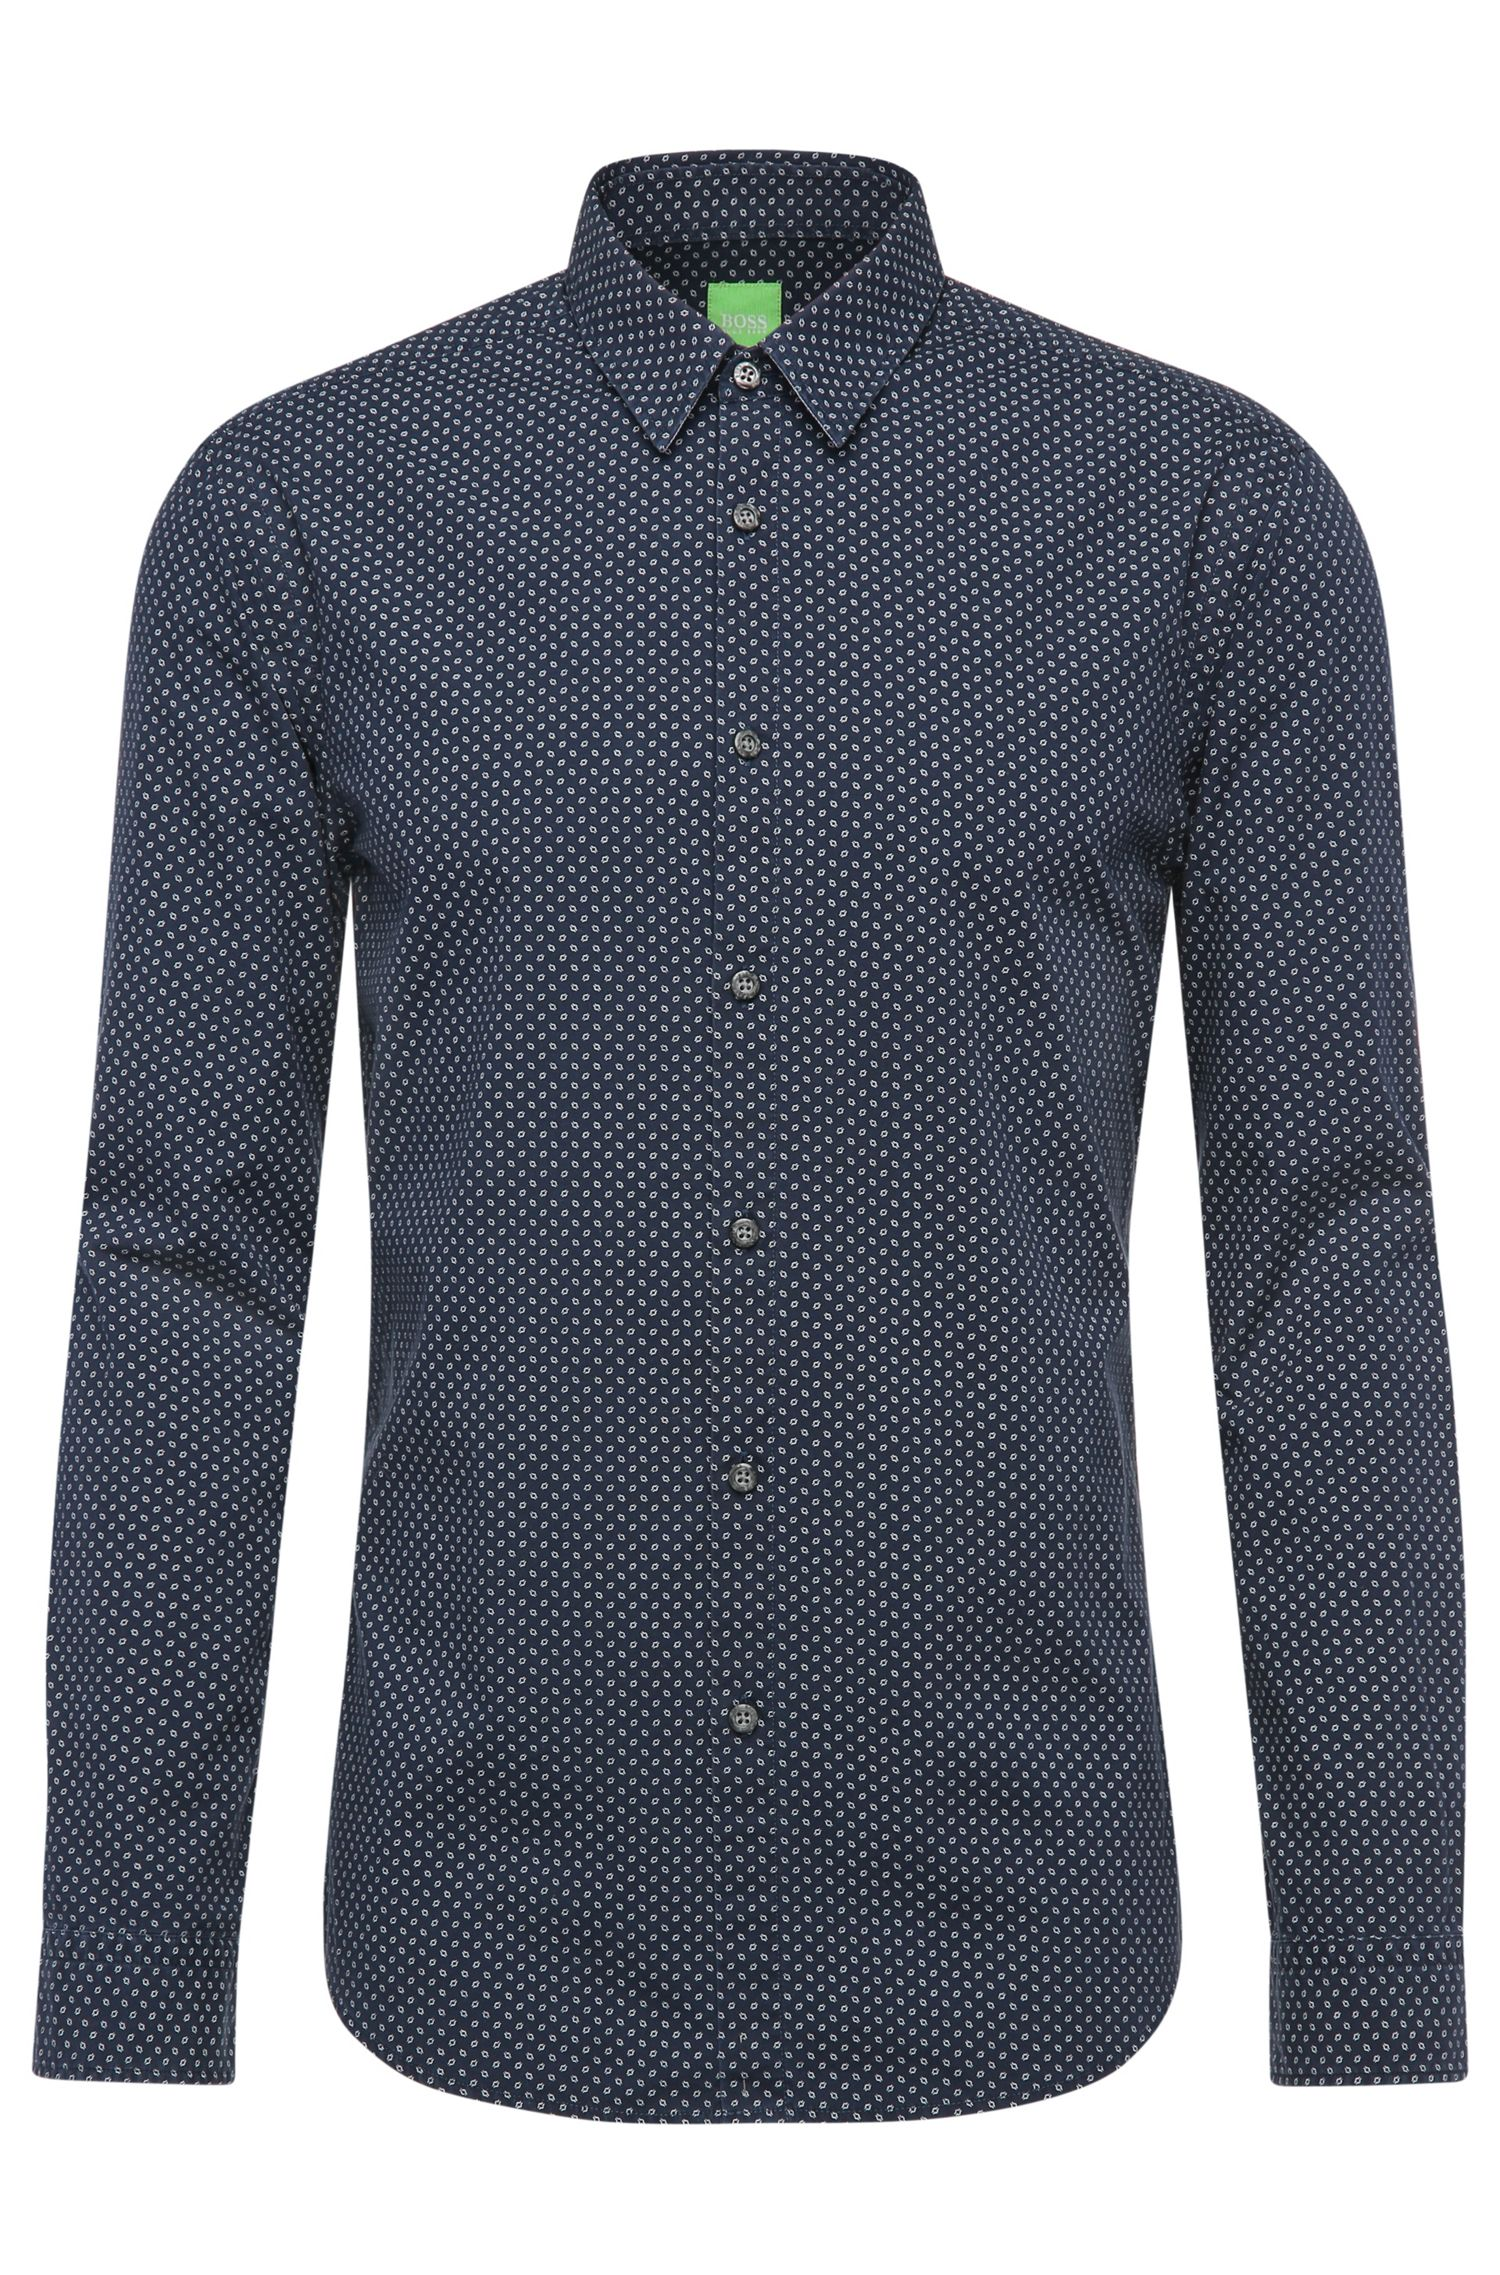 Regular-fit shirt in patterned cotton: 'C-Briar'